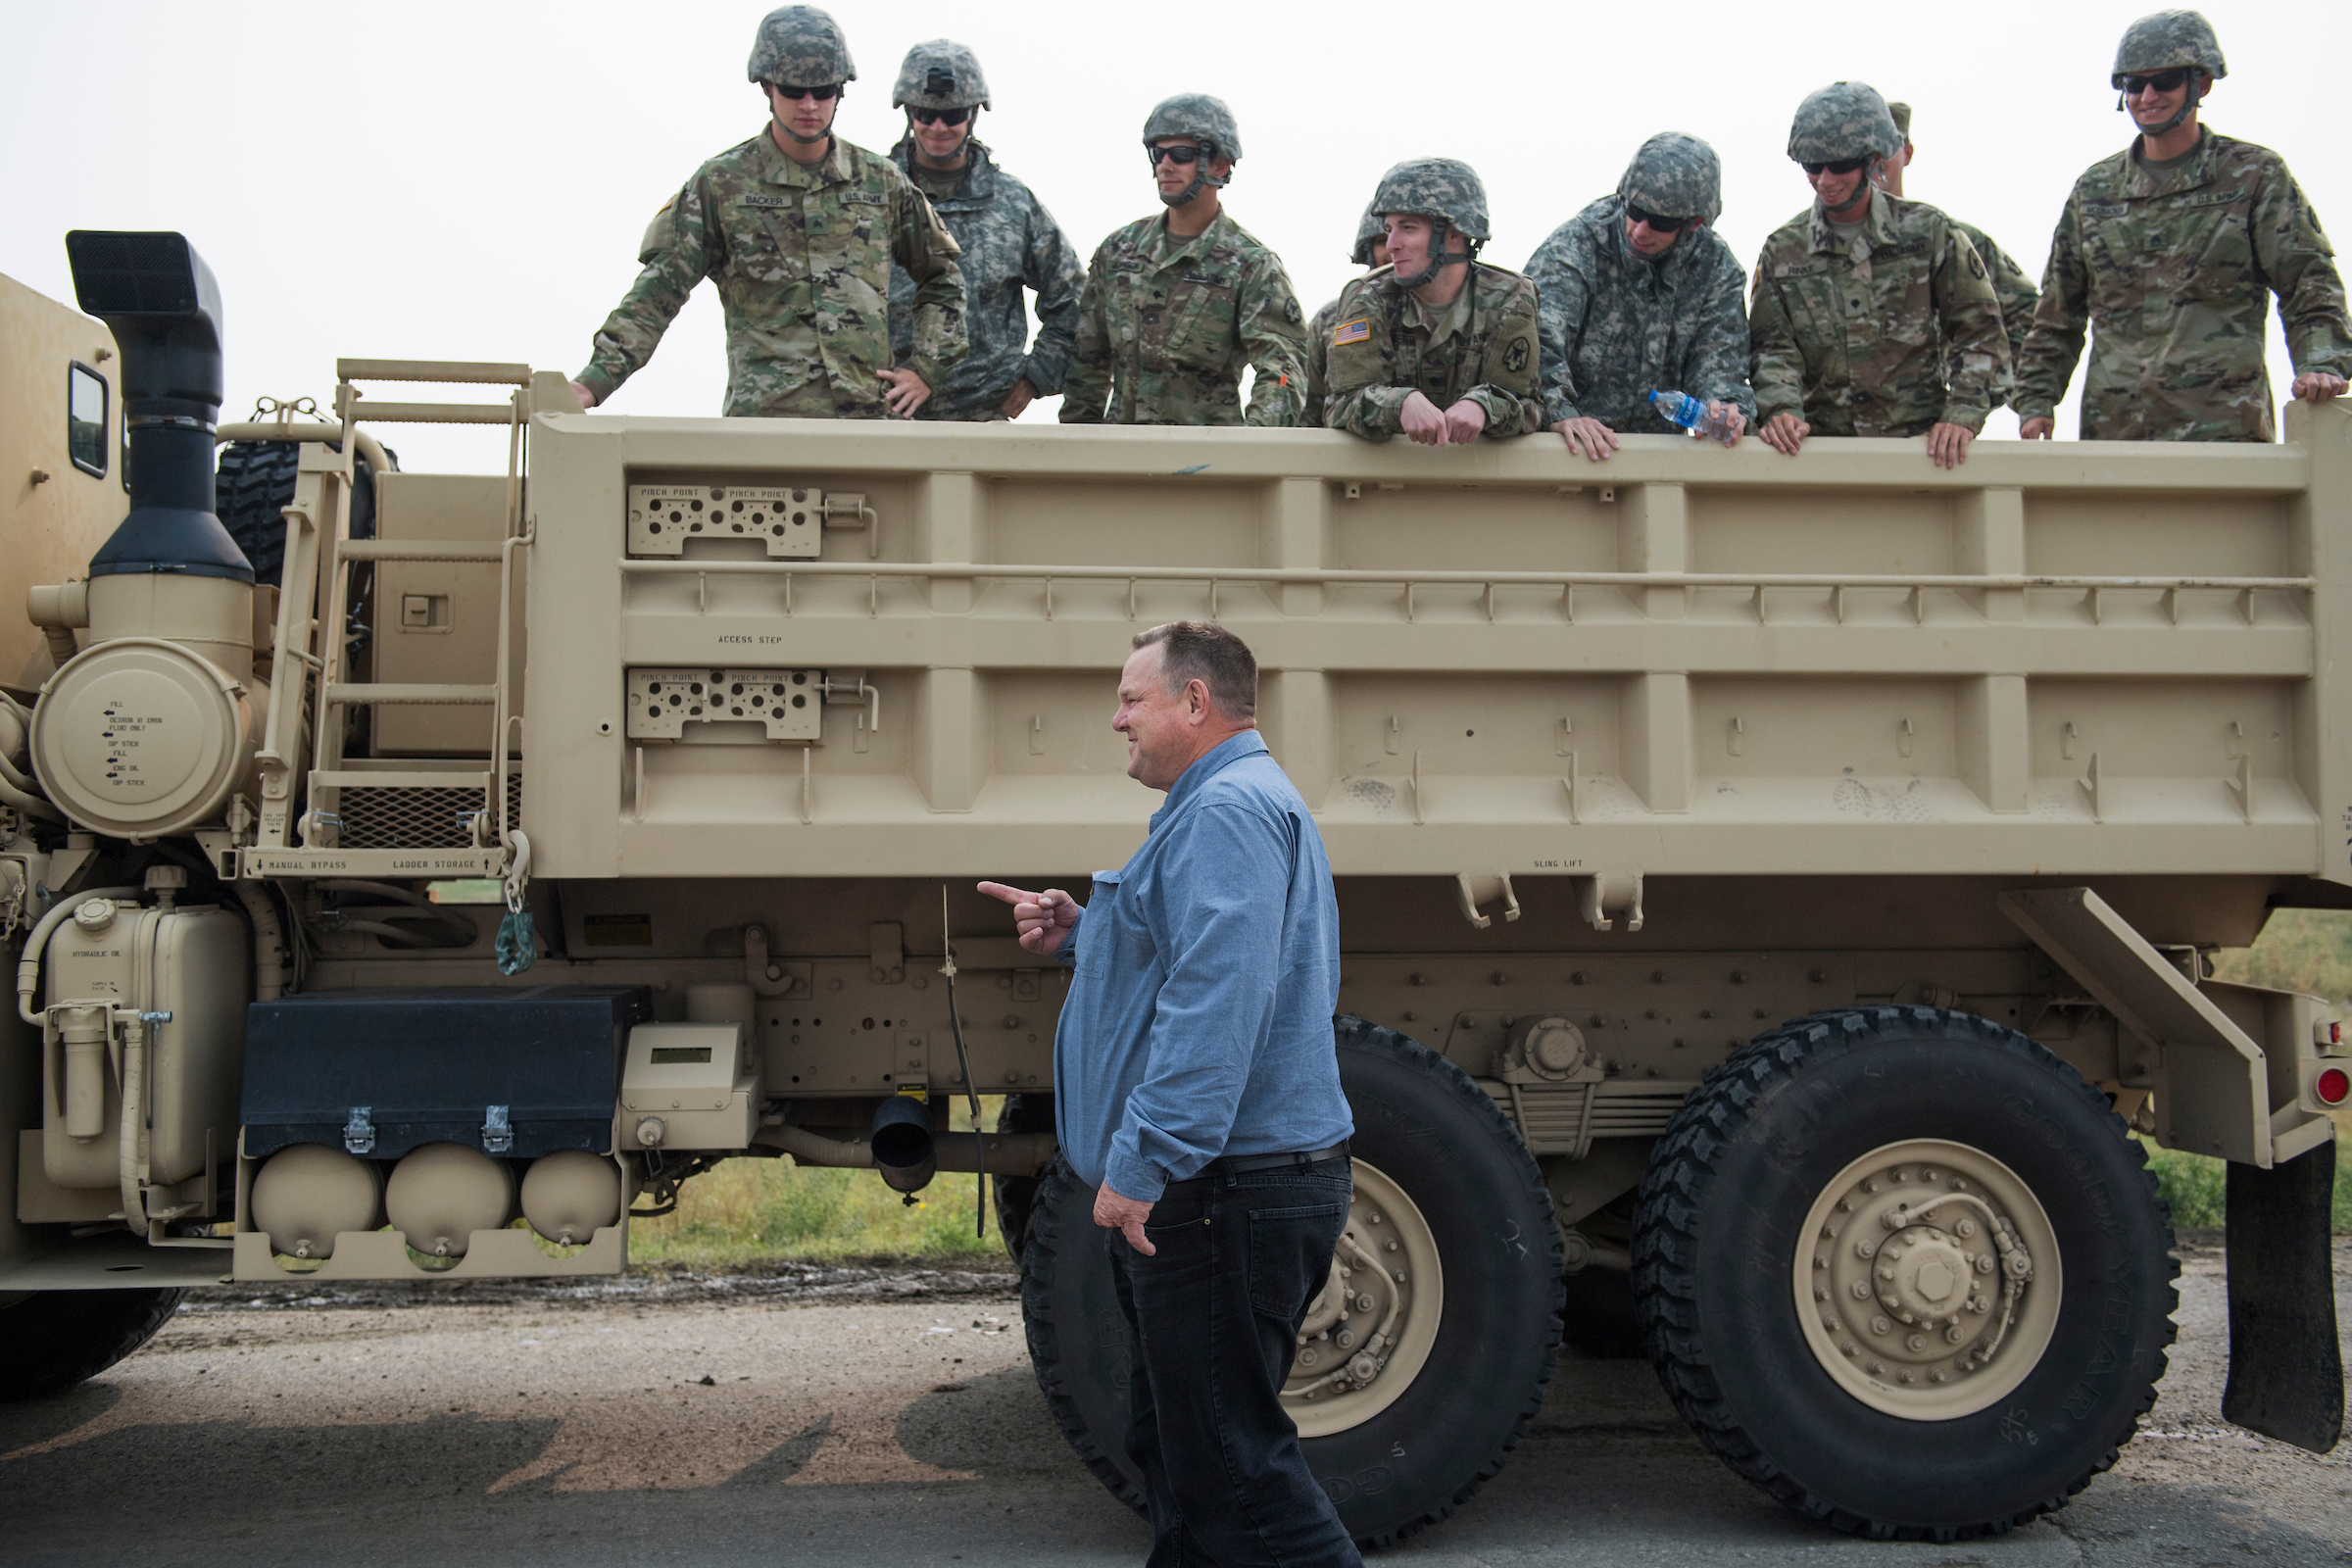 UNITED STATES - AUGUST 19: Sen. Jon Tester, D-Mont., talks with service members before a parade at Crow Fair in Crow Agency, Mont., on August 19, 2018. Tester is being challenged by Republican Matt Rosendale for the Senate seat. (Photo By Tom Williams/CQ Roll Call)